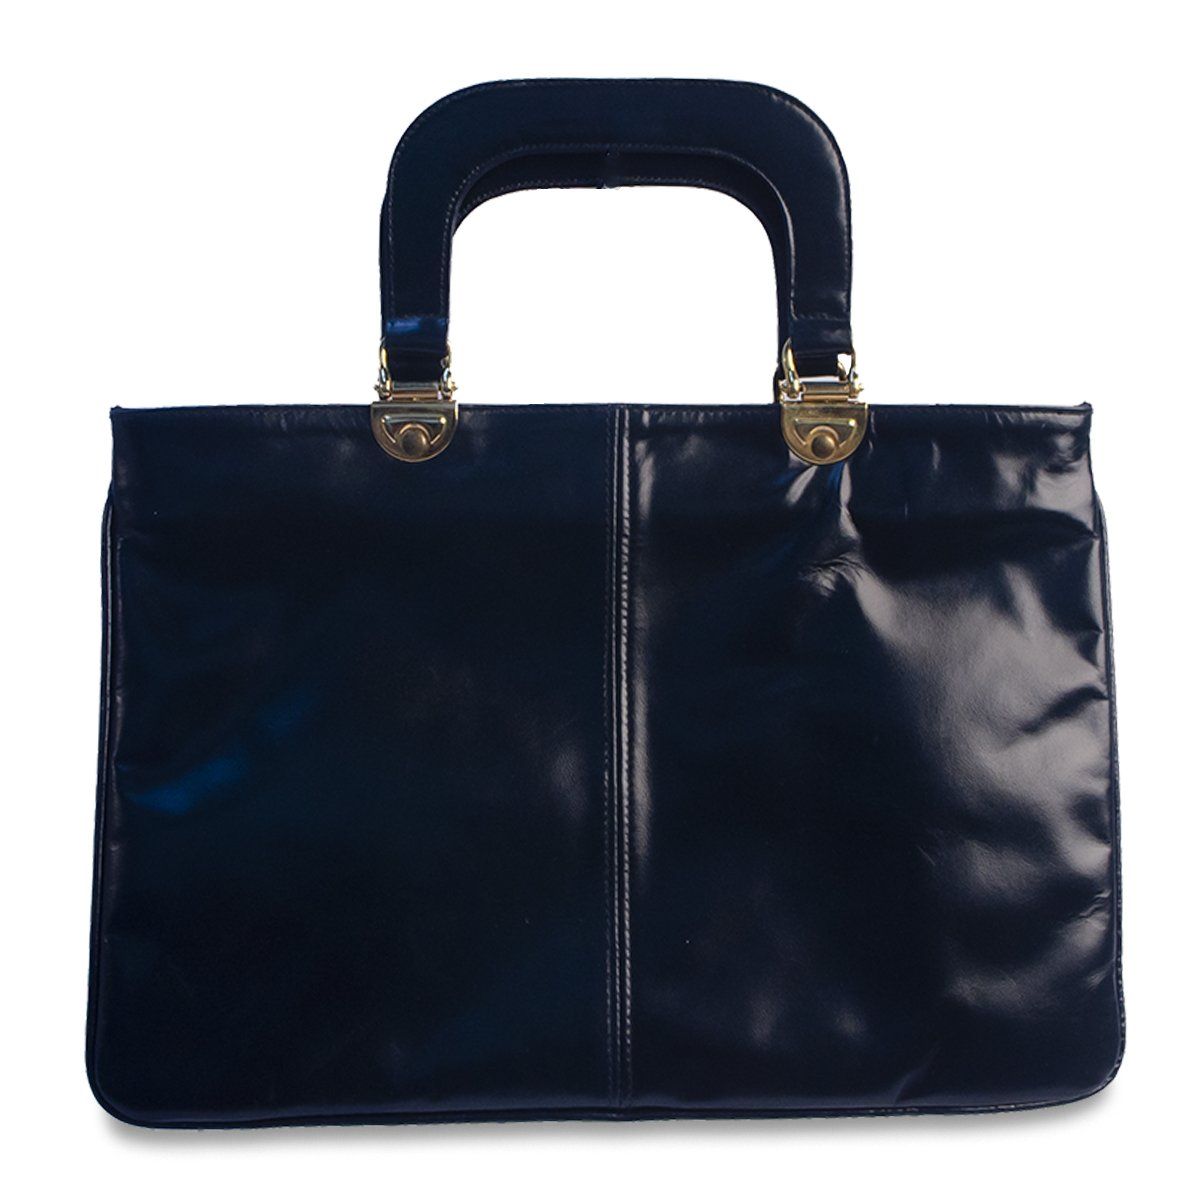 Vintage Navy Handbag, Made in Italy